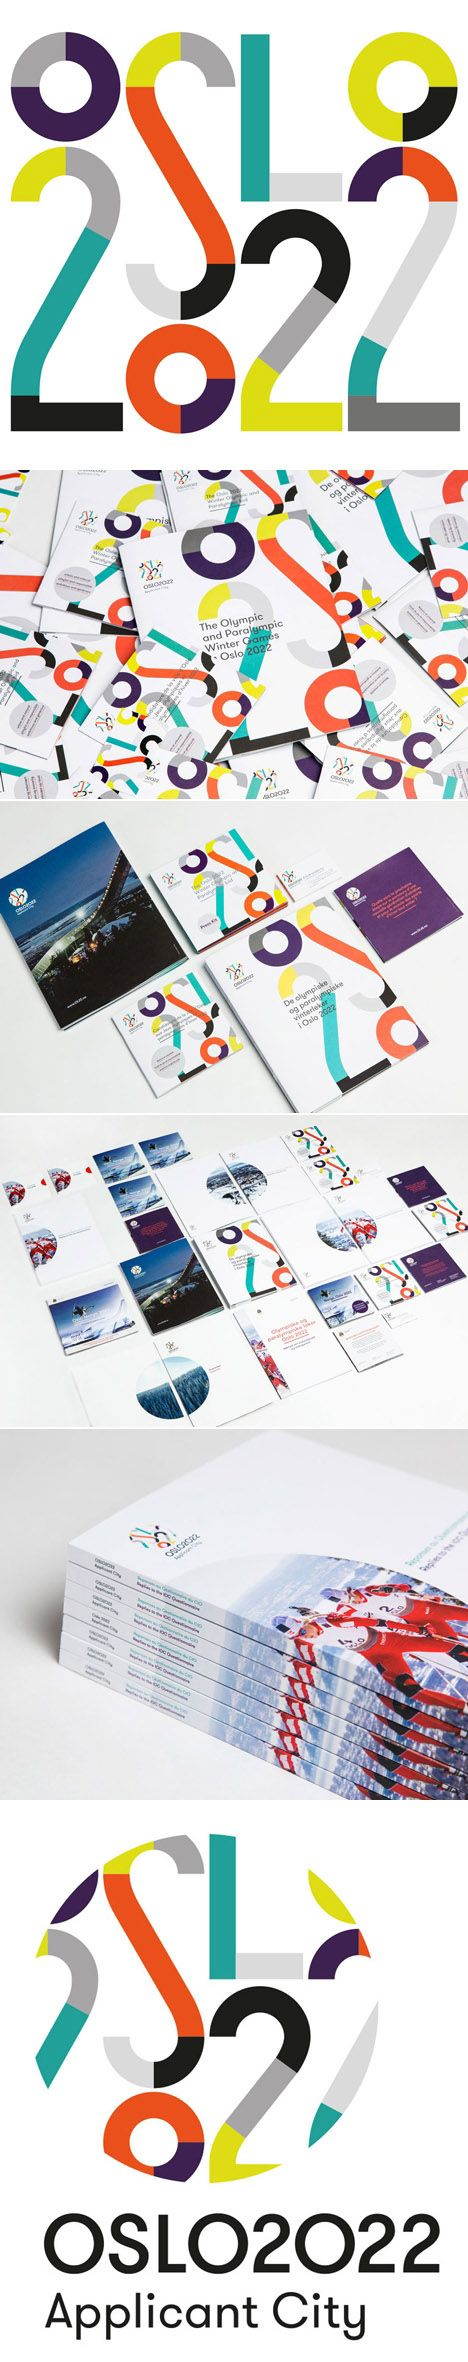 snohetta-visual-identity-oslo-2022-winter-olympics-bid